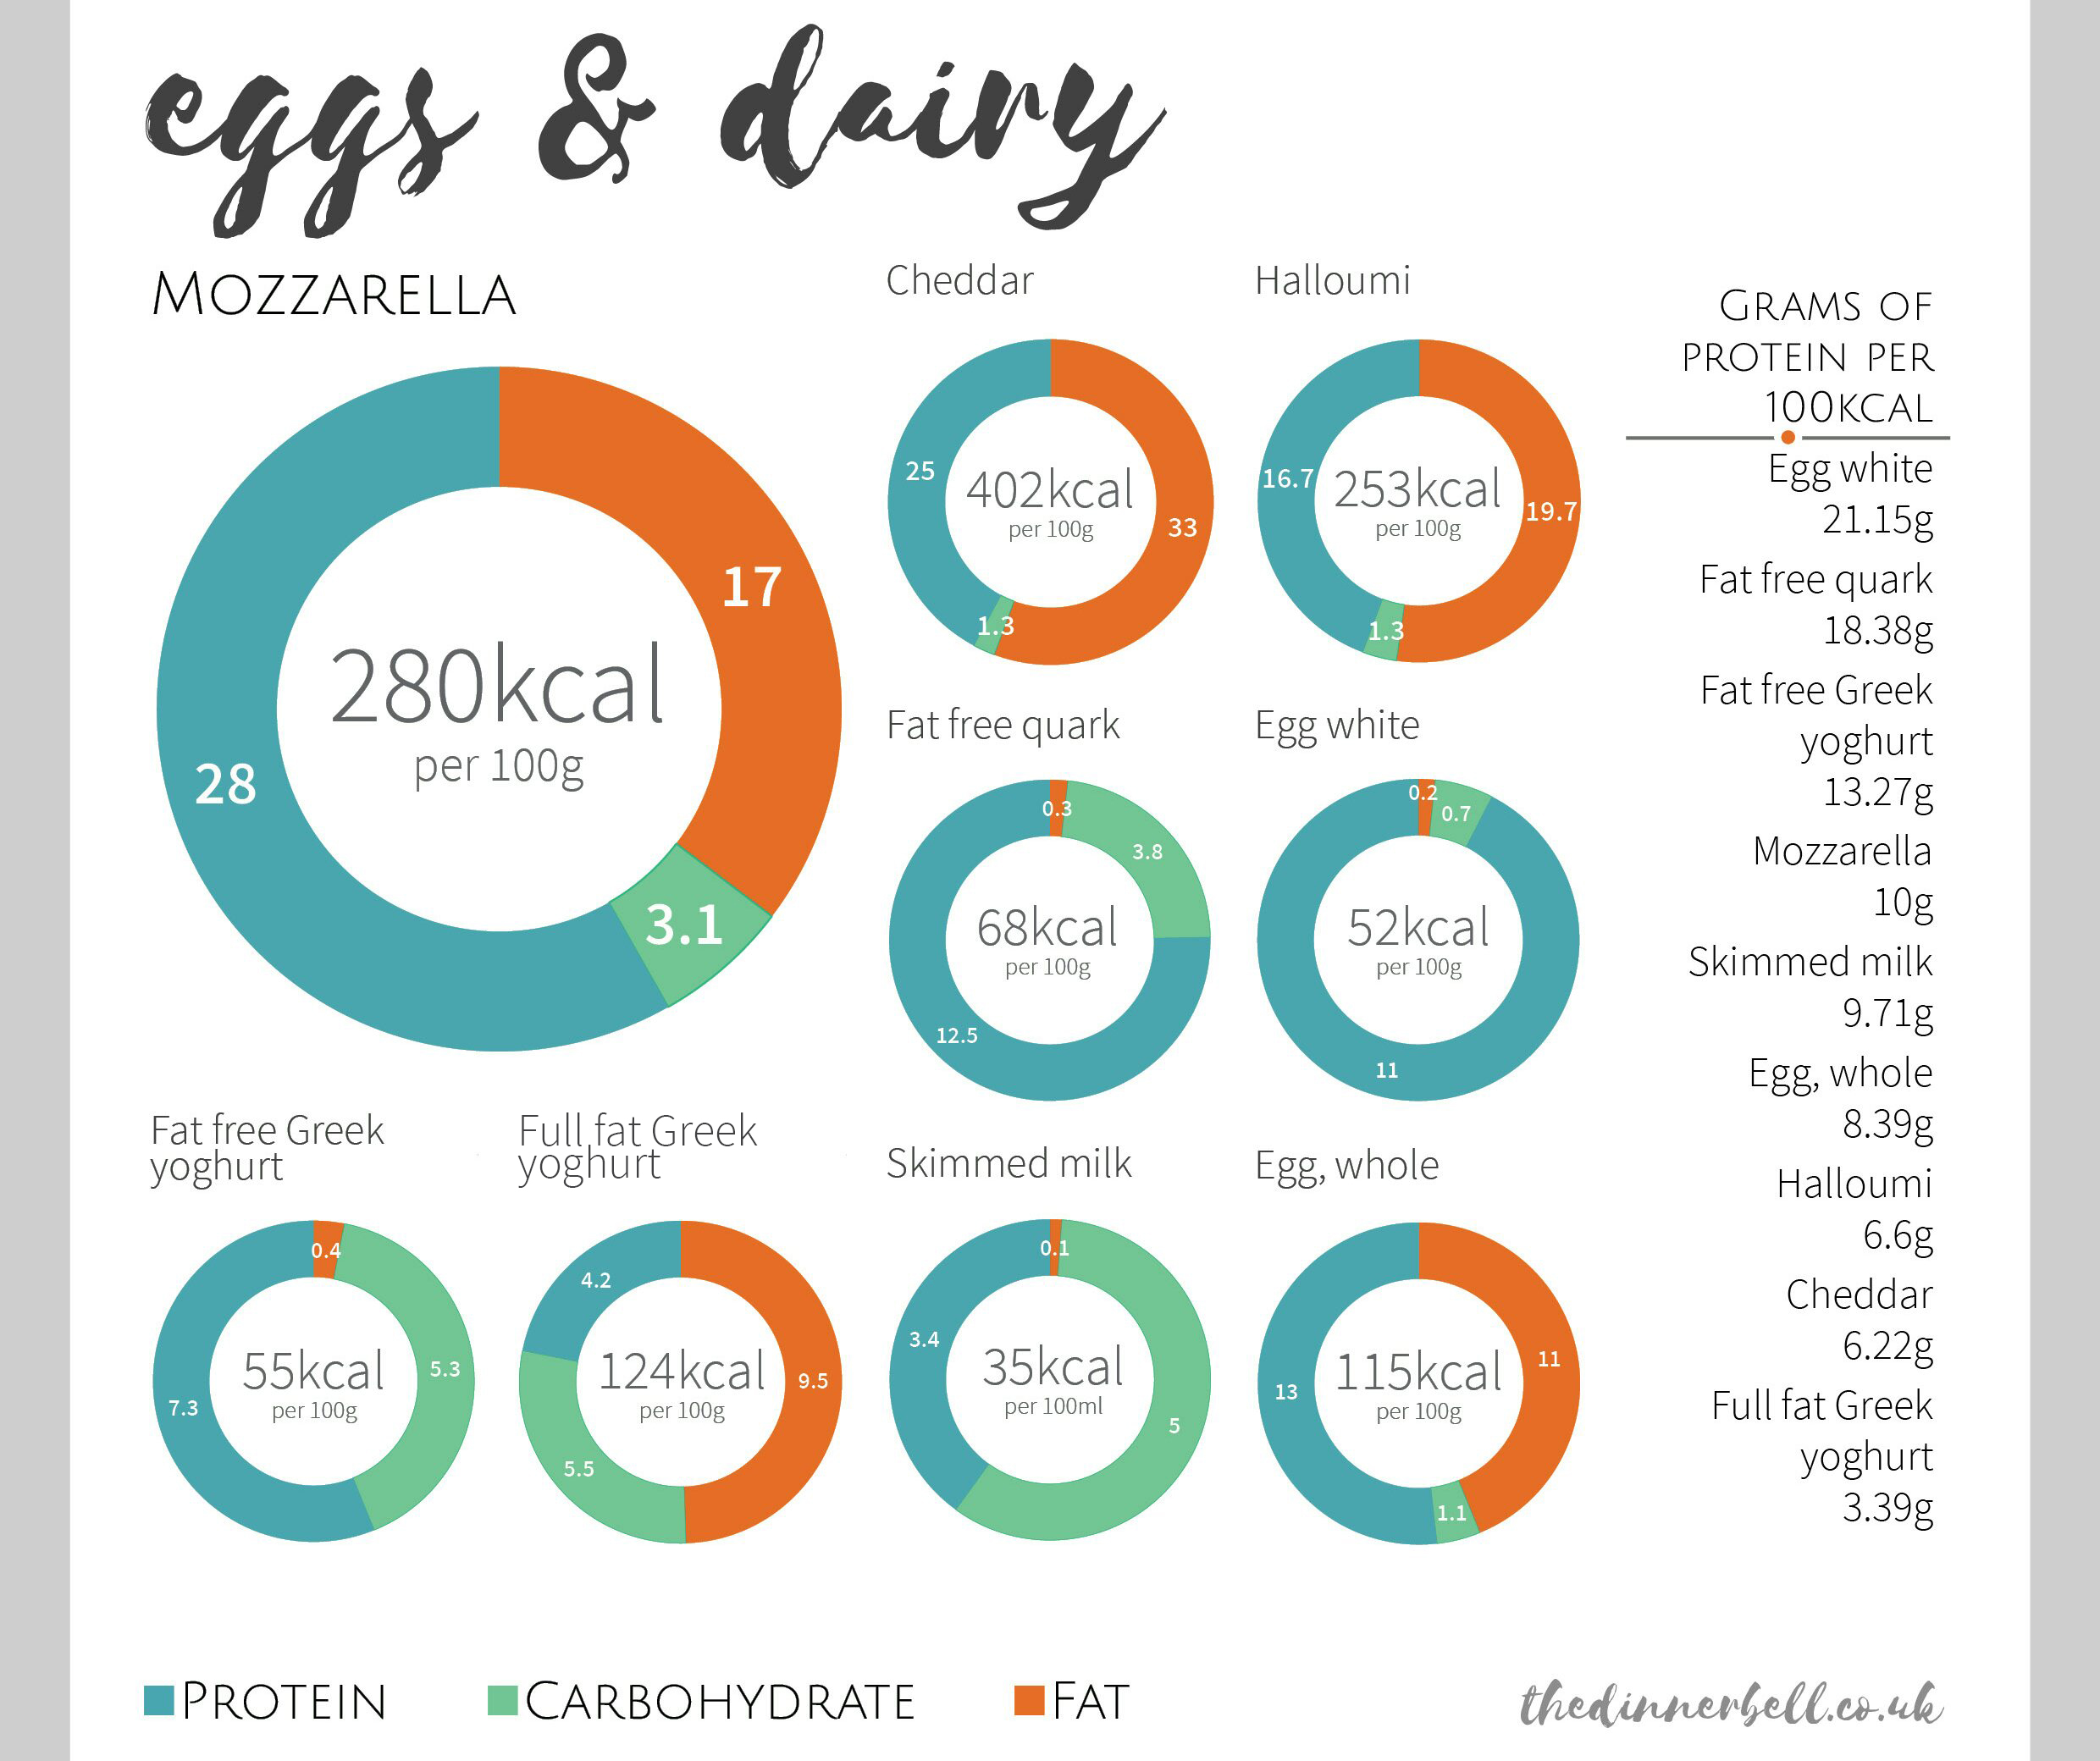 Guide to the best protein sources - eggs and dairy